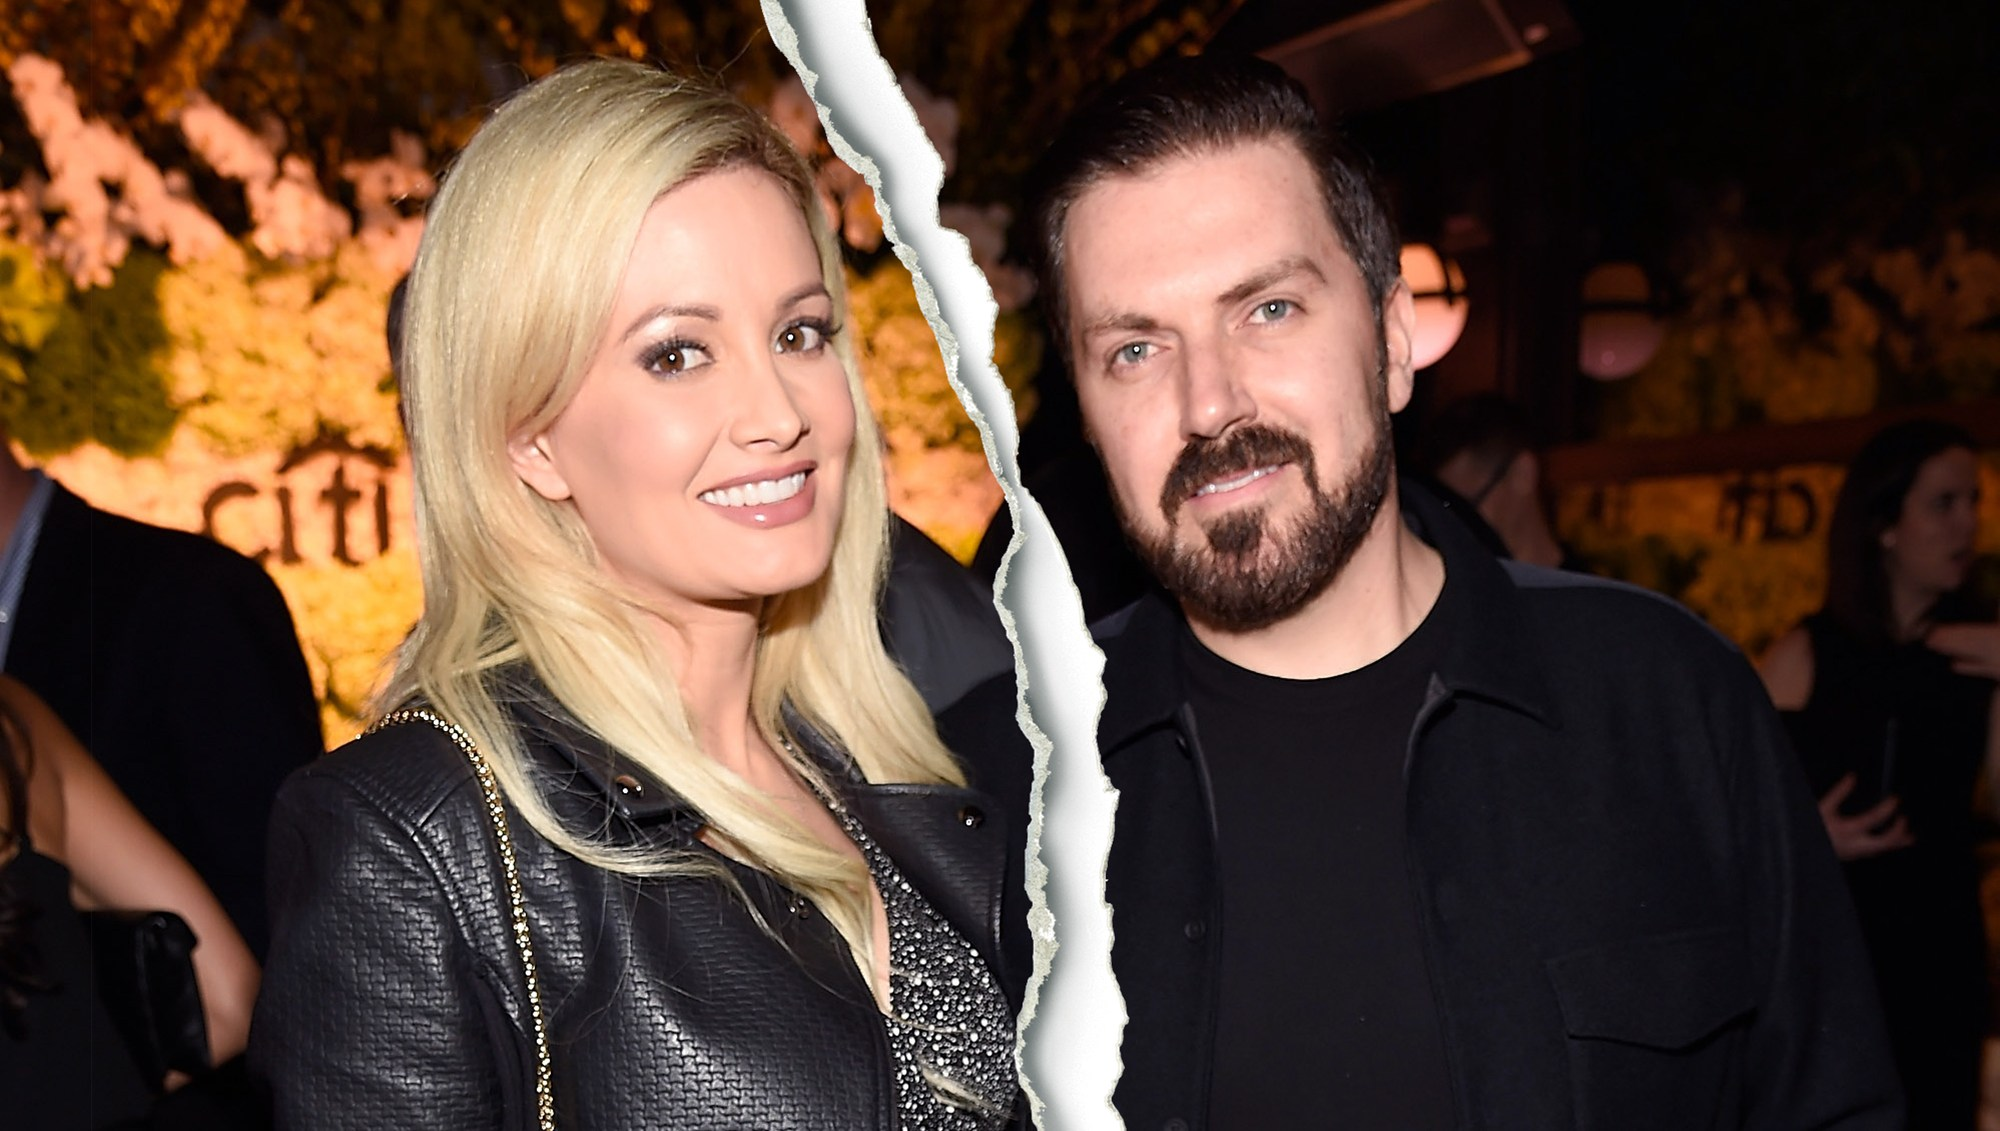 Holly Madison and Pasquale Rotella Are Divorcing After Five Years of Marriage